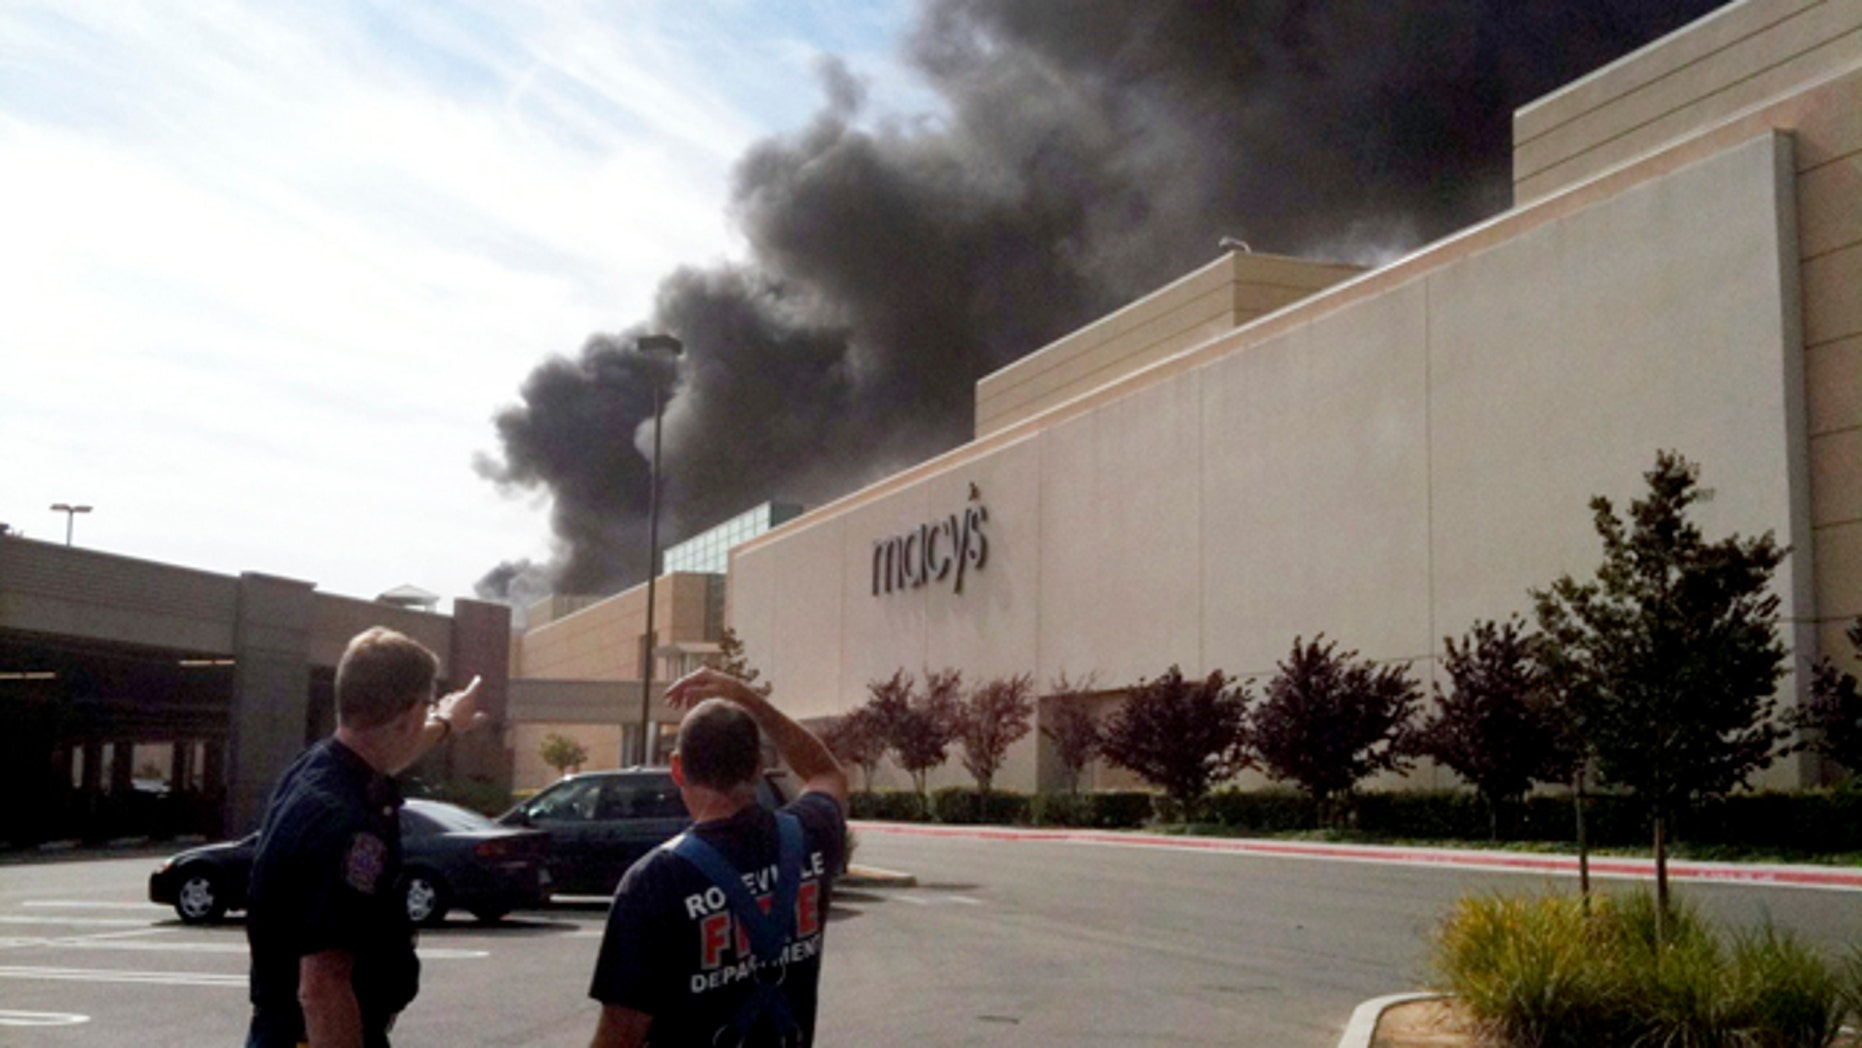 Oct. 21: Smoke billows out of the of the Roseville Galleria after a man entered a store earlier in the day and set the shop on fire in Roseville, Calif.